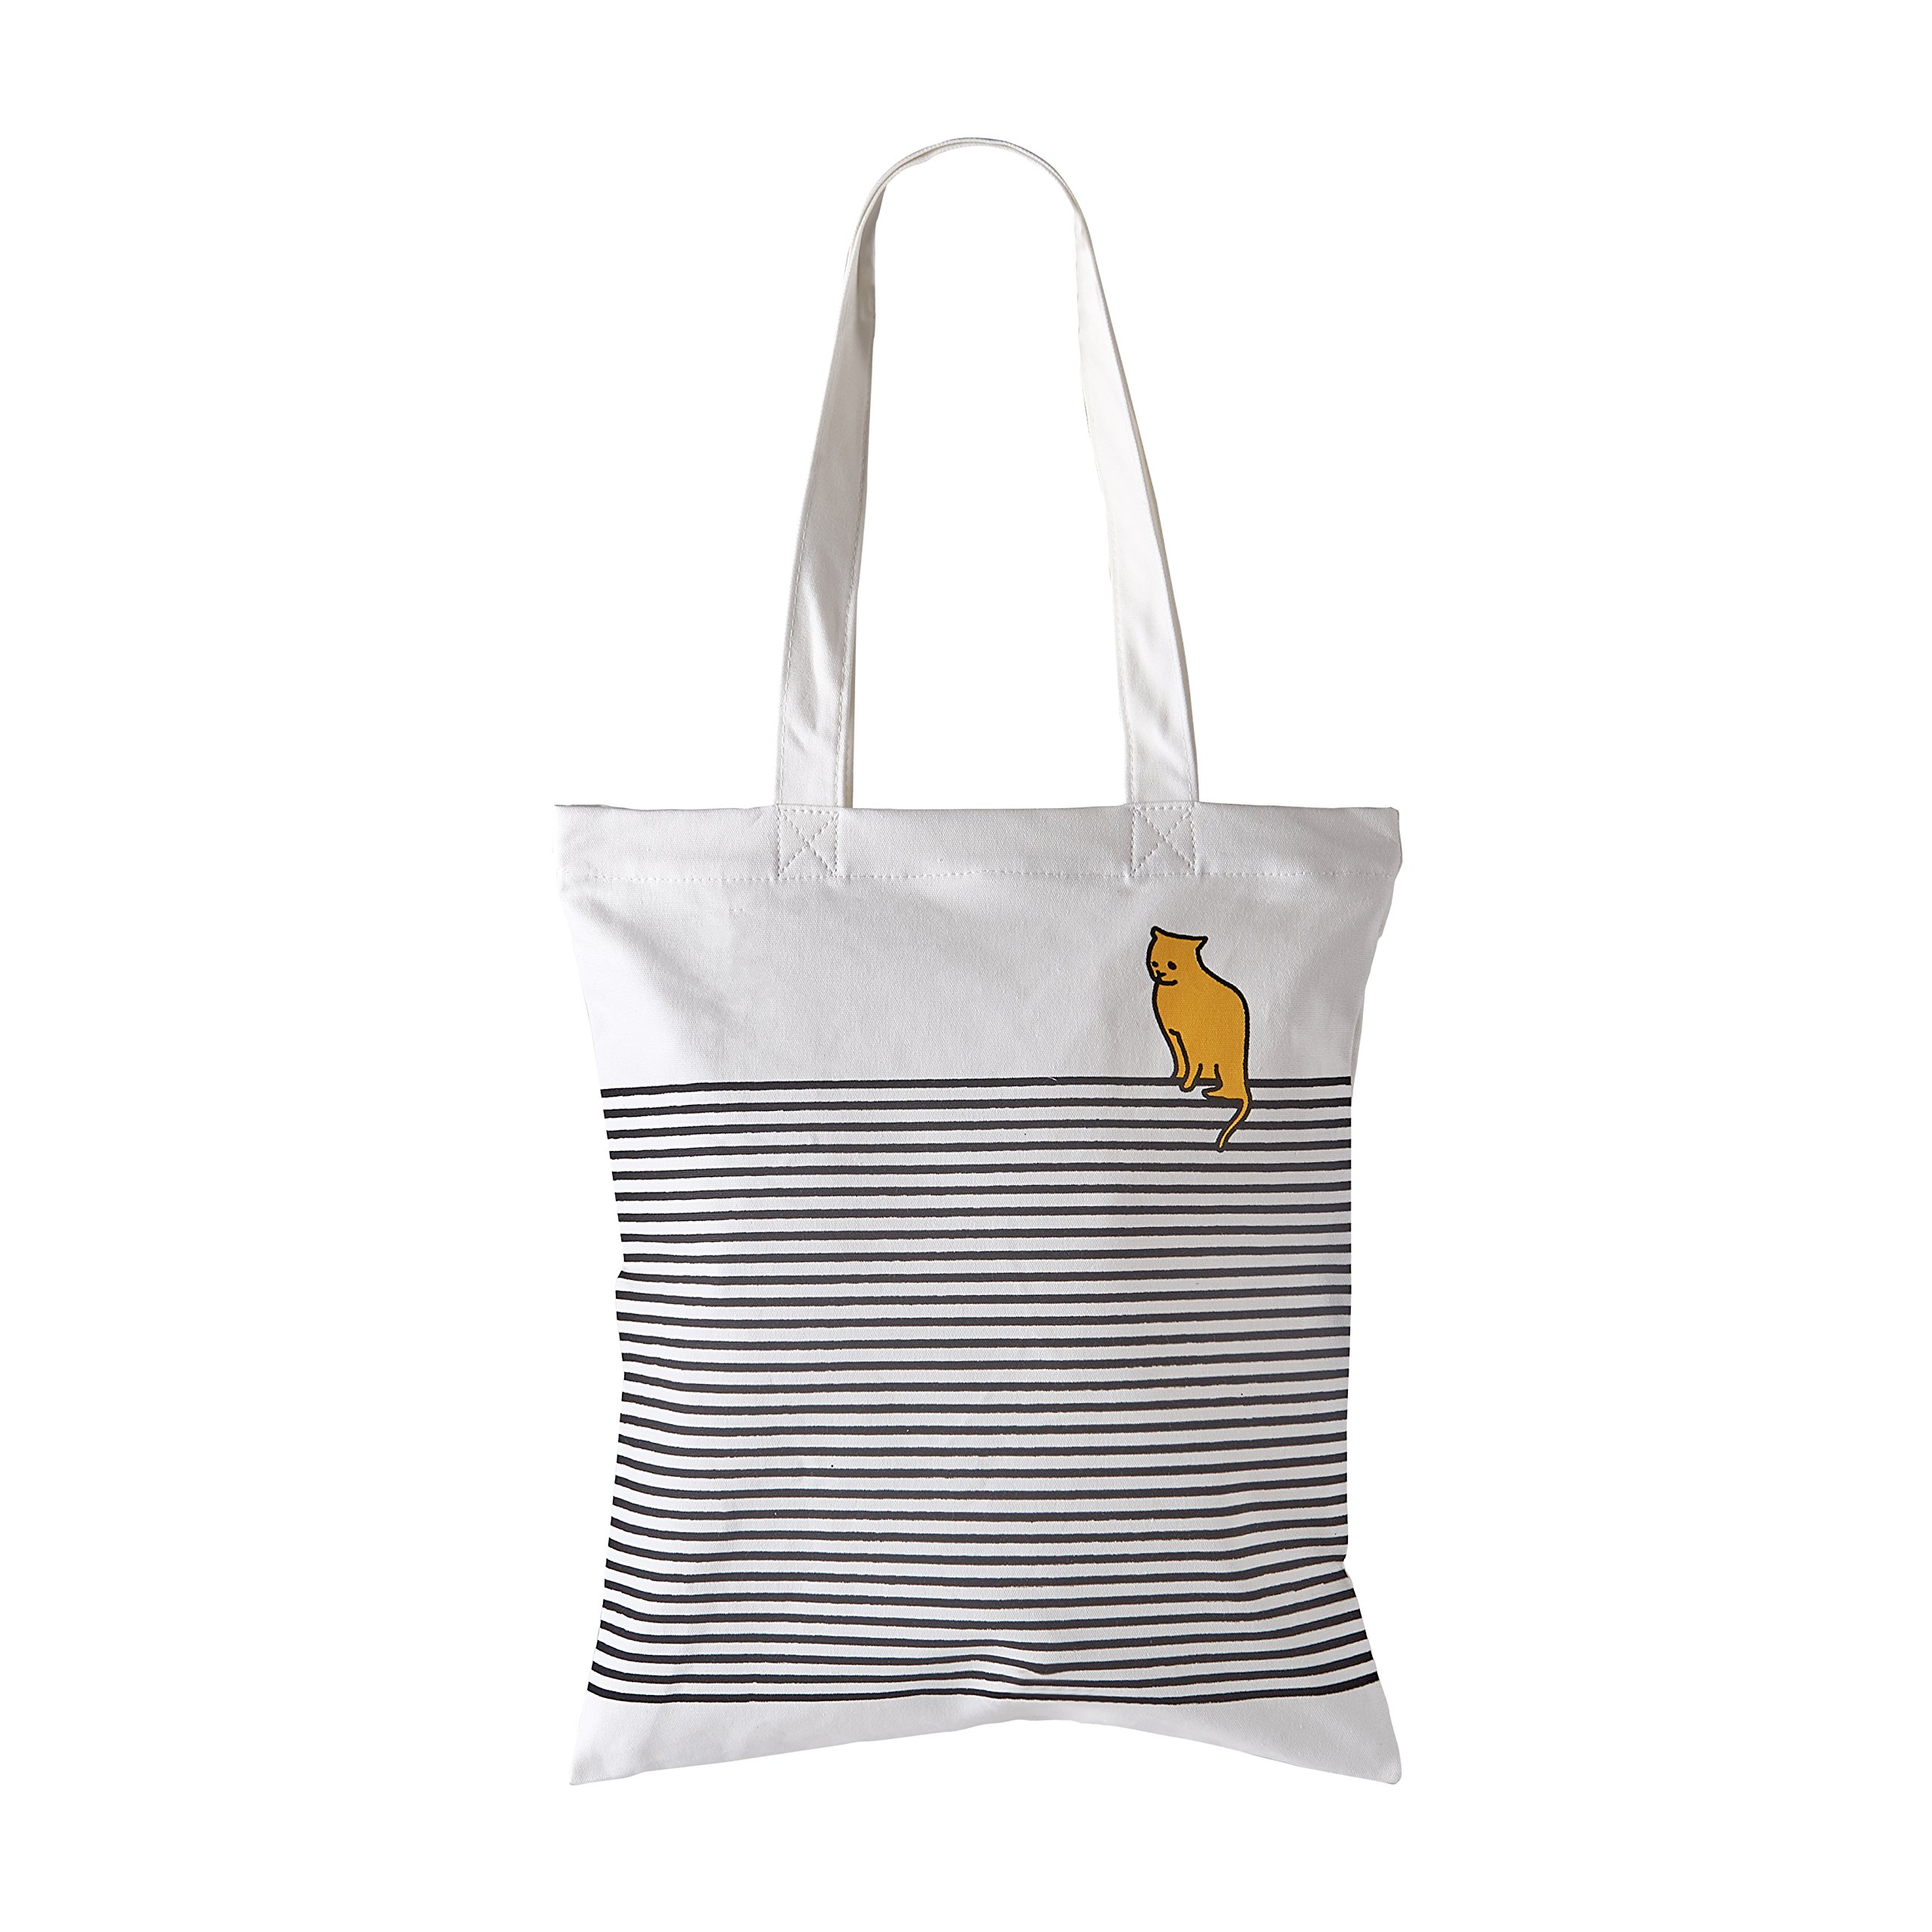 Waitworth 'Into the Black' Cotton Canvas Tote Bag Stylish Casual Shoulder Bag with Zipper and Pocket for Shopping Travel and School Work Black Striped Eco-Friendly (Blackcat)